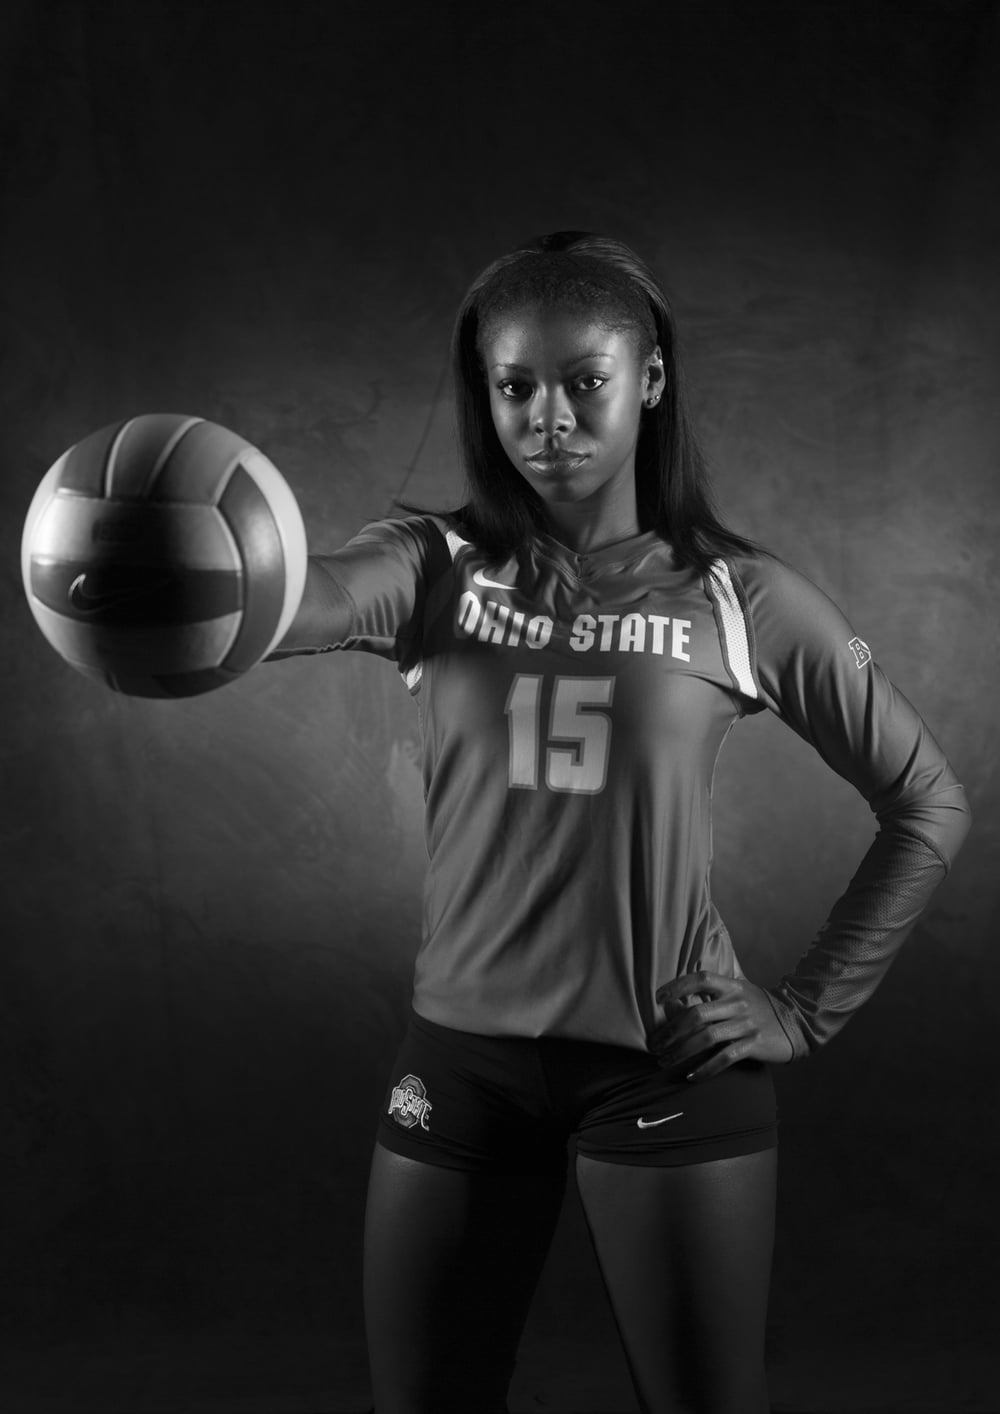 071515-Volleyball_Portraits-156.jpg